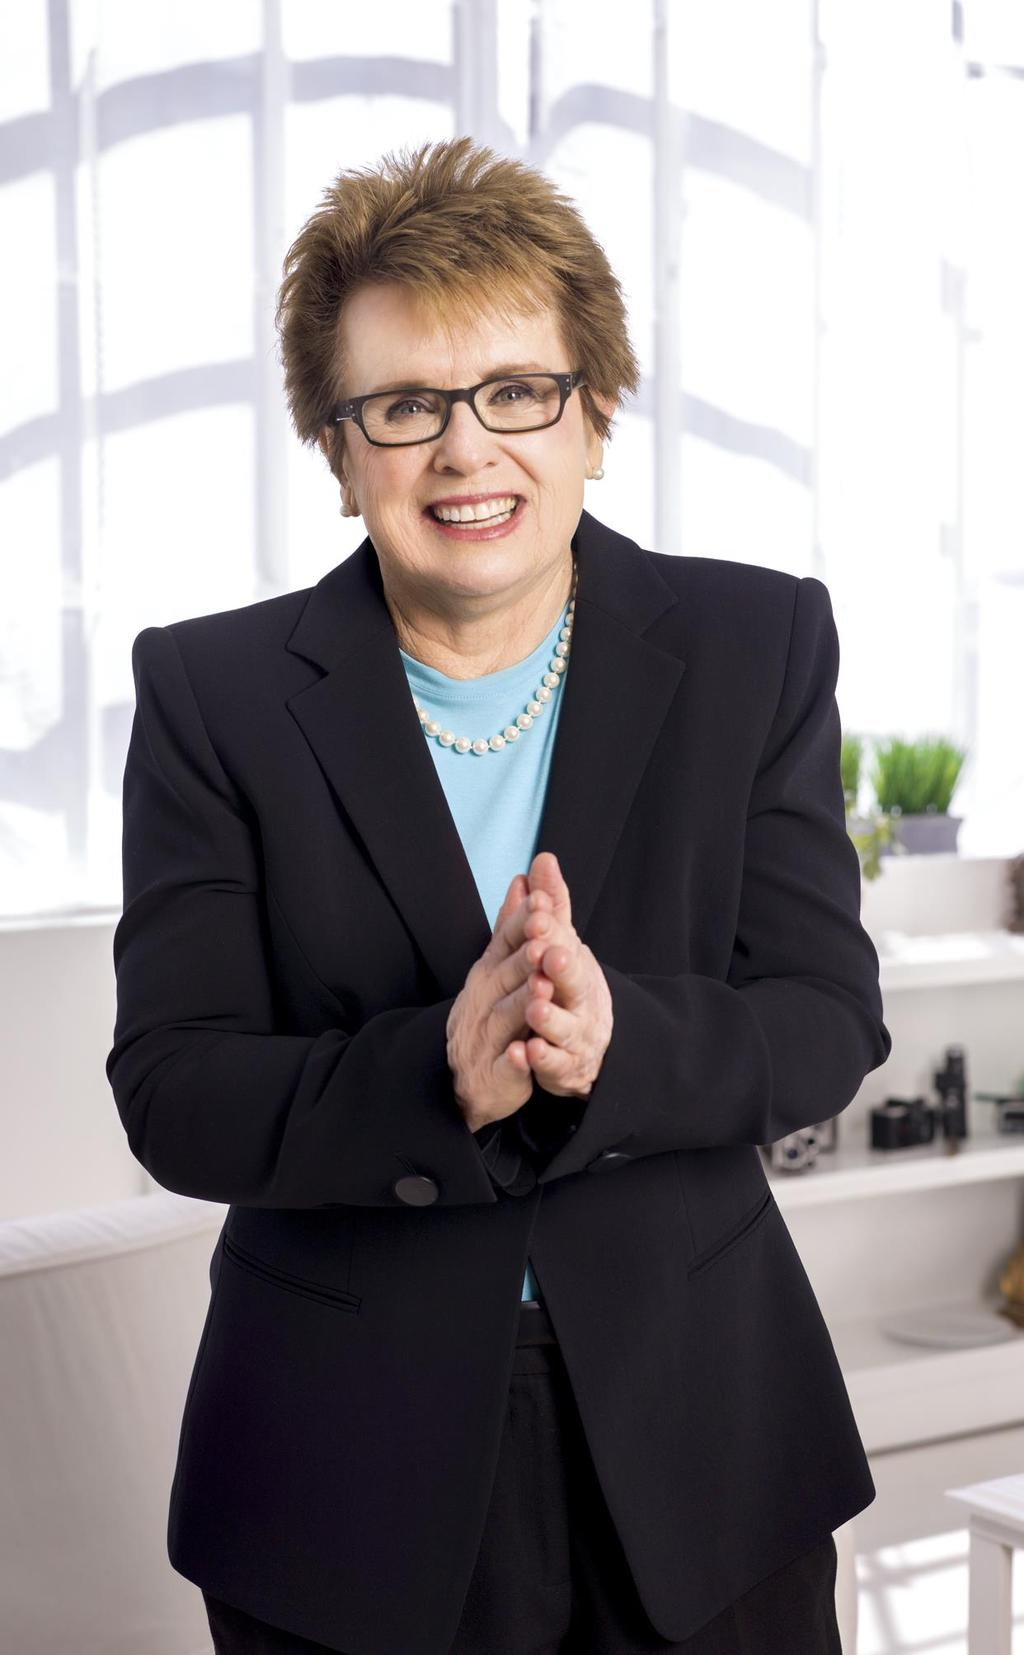 An Icon Billie Jean King is a co-founder and ambassador for Mylan WTT Won 39 Grand Slam singles, doubles and mixed doubles tennis titles, including a record 20 titles at Wimbledon Received the